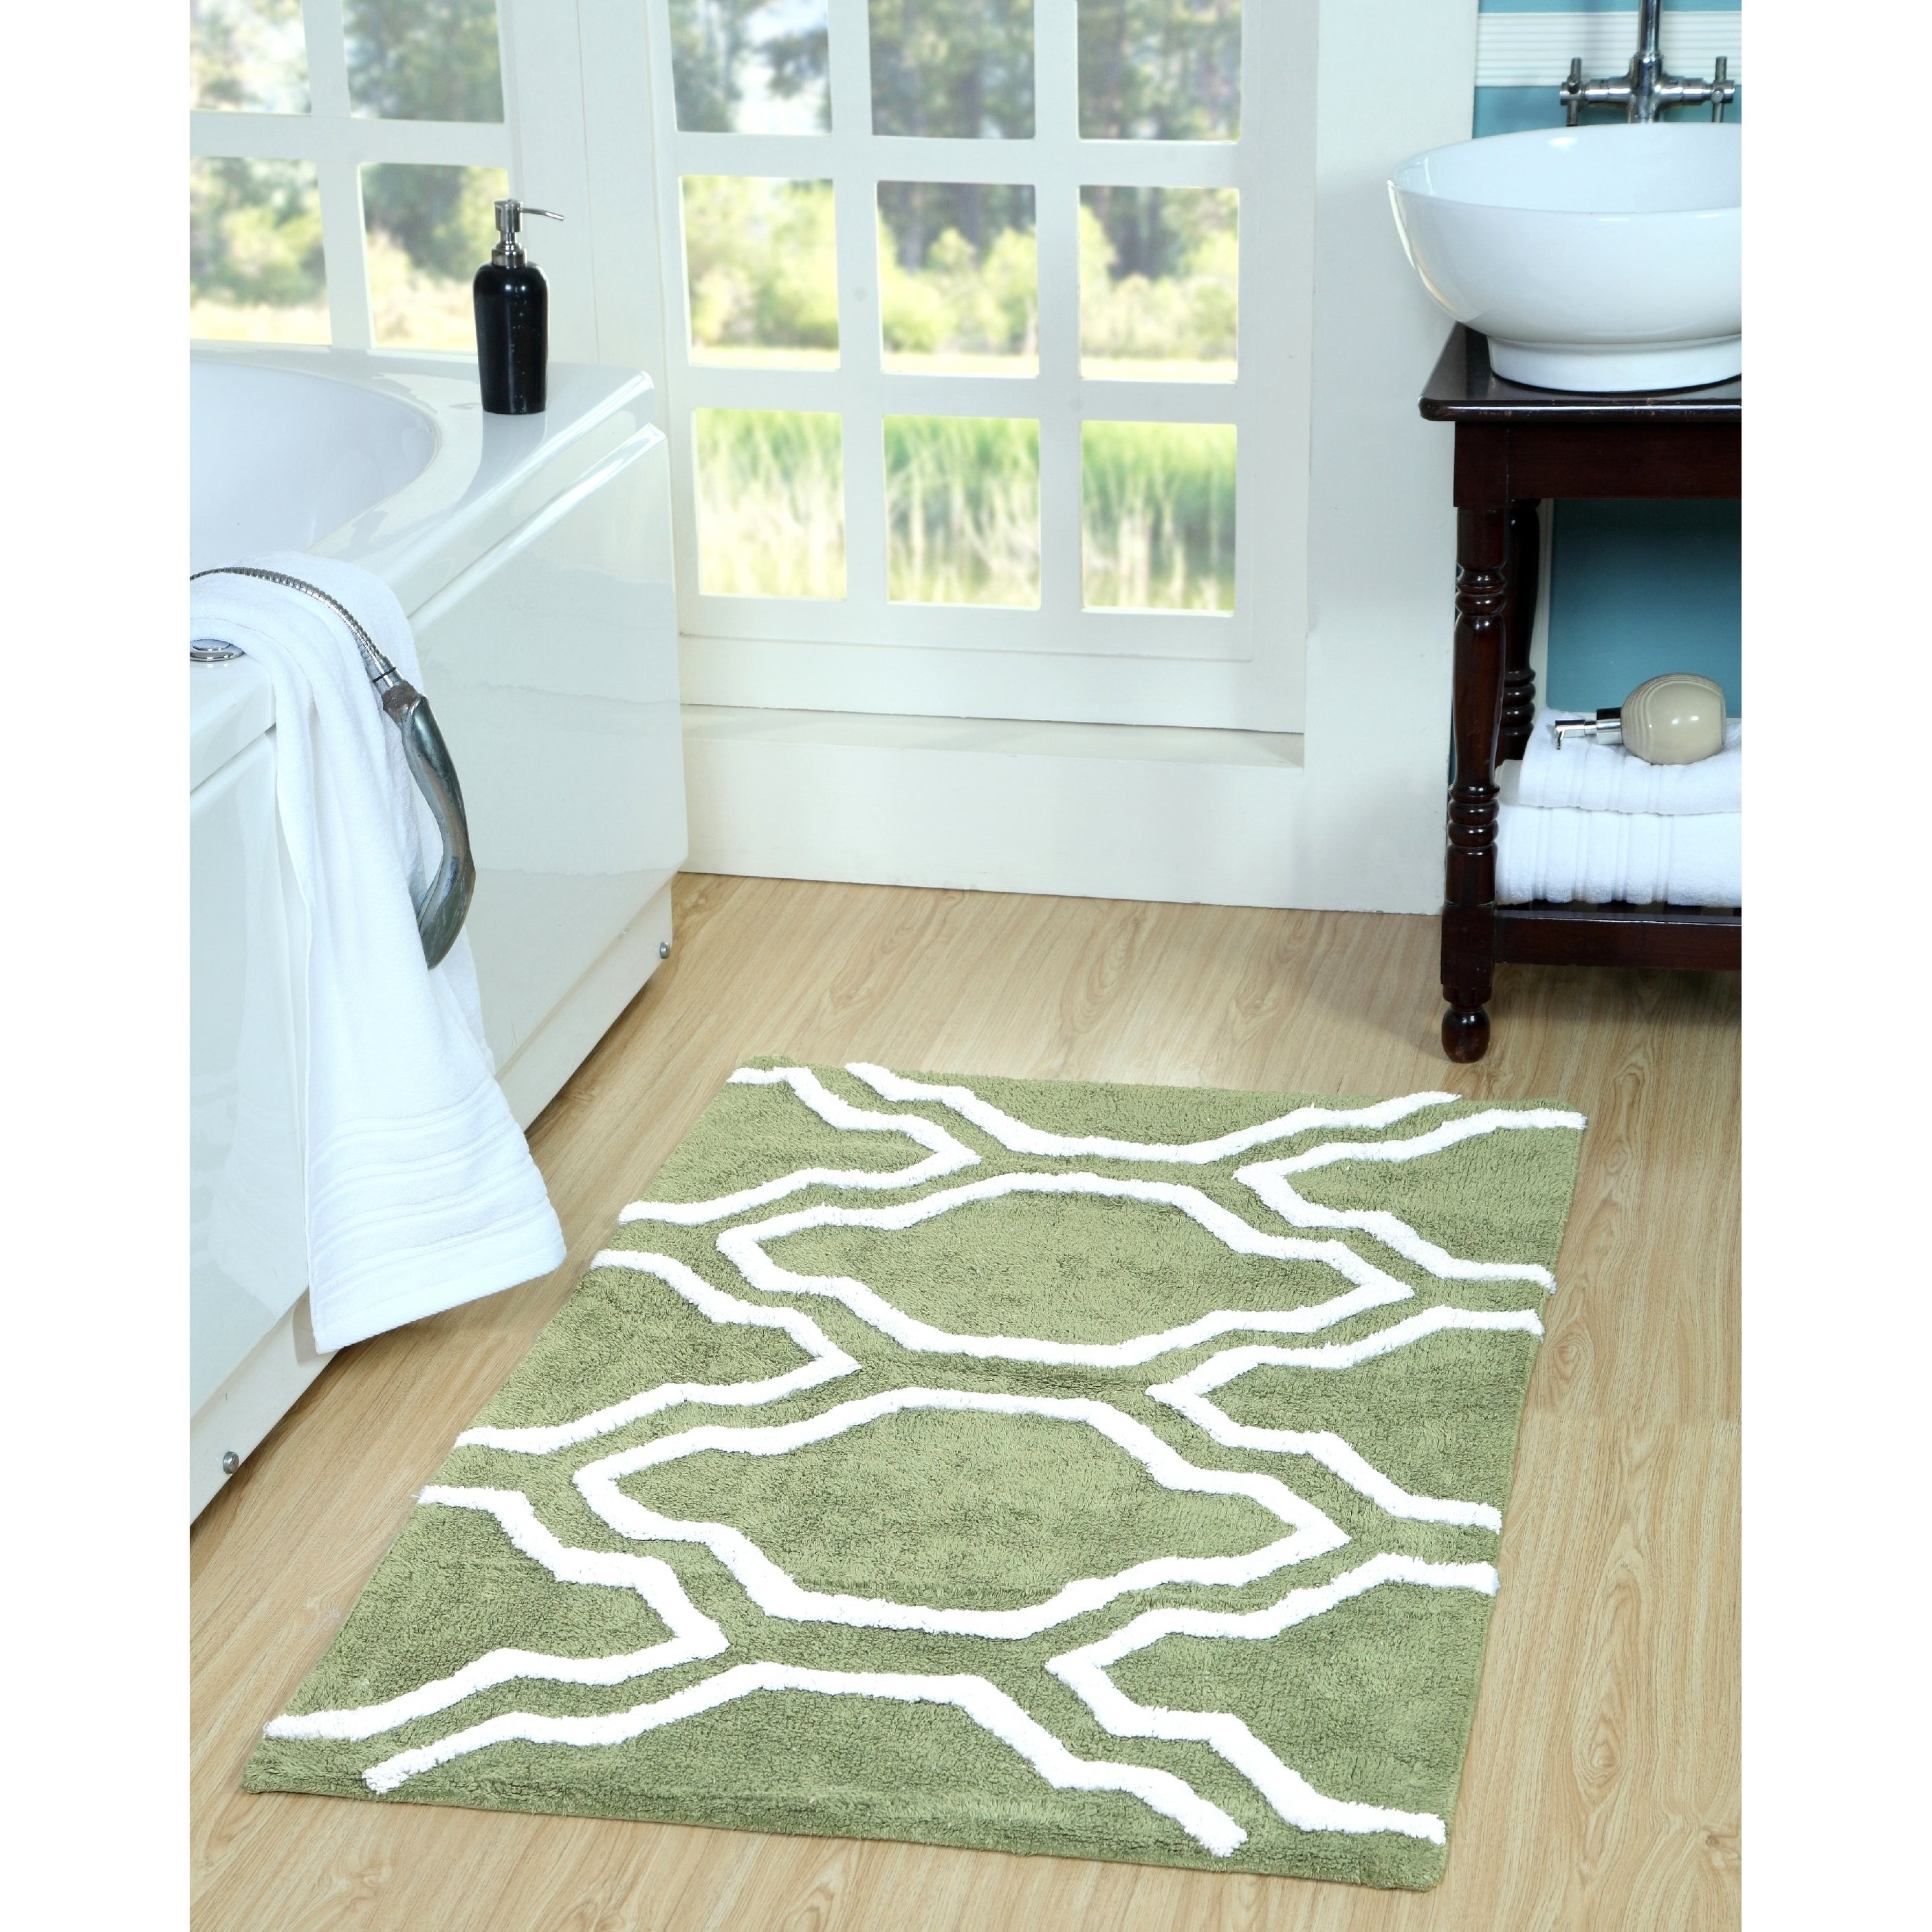 rugs this pattern the features beautiful material a trellis pin dorm pop of with geometric saleya stylish and rug woven color area shapes turquoise add home to your microfiber